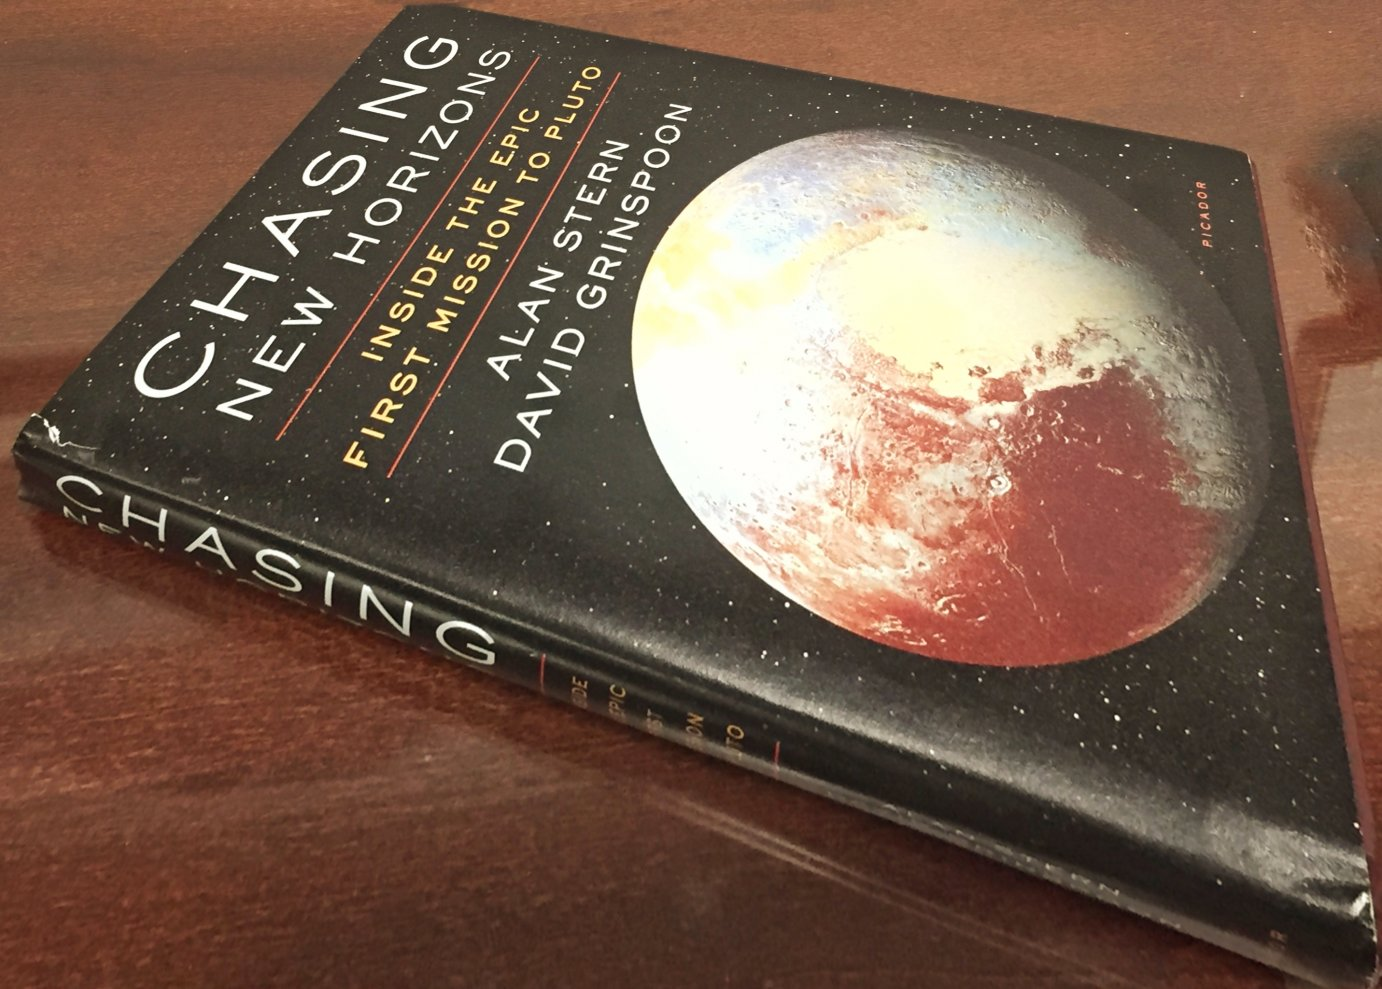 Chasing New Horizons: Inside the Epic First Mission to Pluto, published by Picador USA